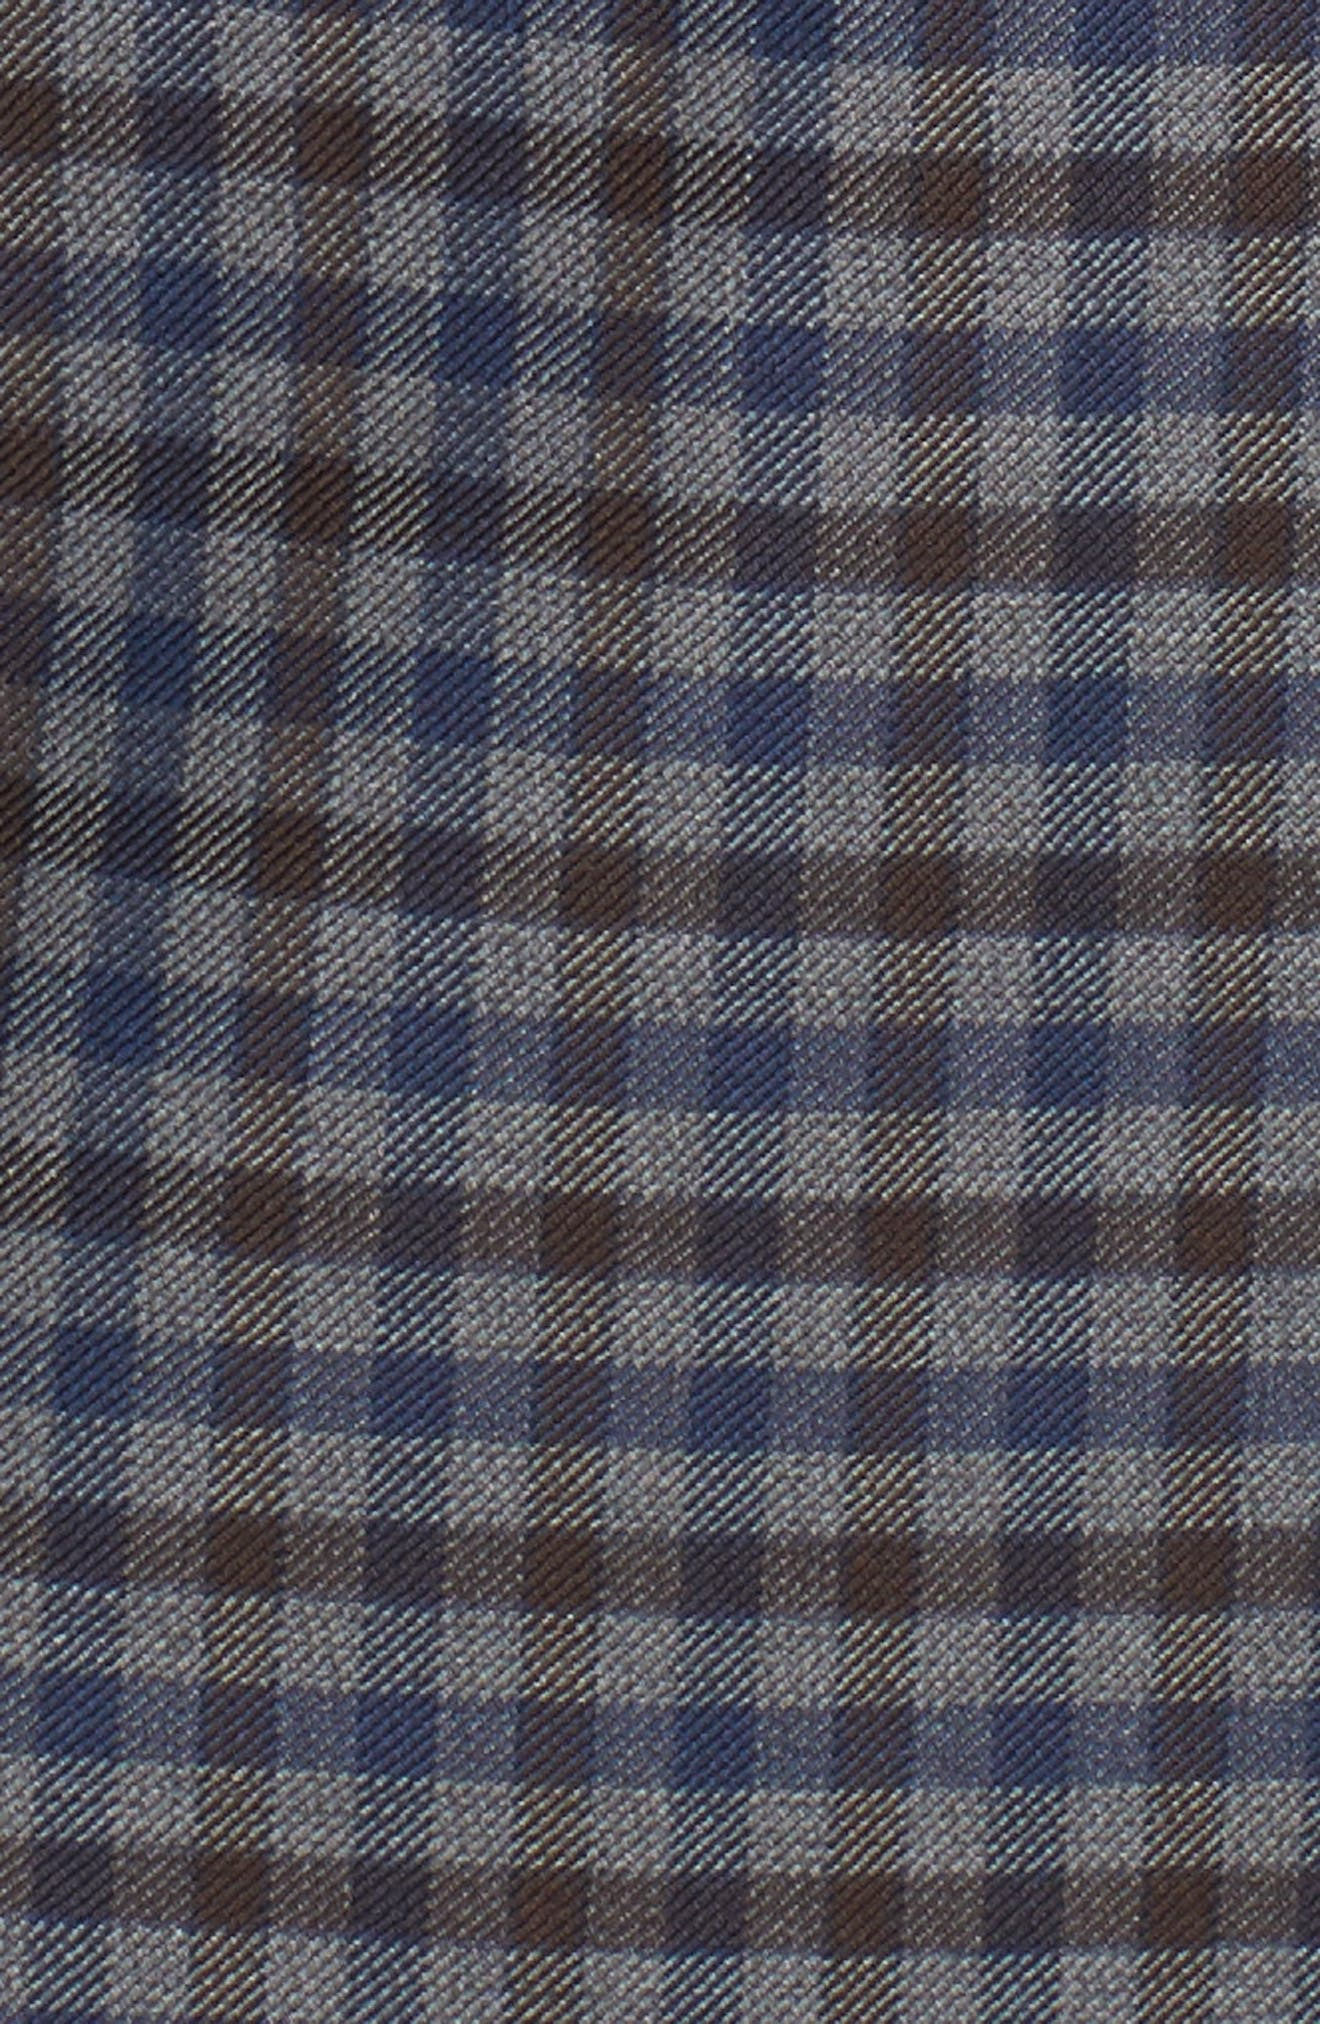 Arnold Classic Fit Check Wool Sport Coat,                             Alternate thumbnail 6, color,                             020